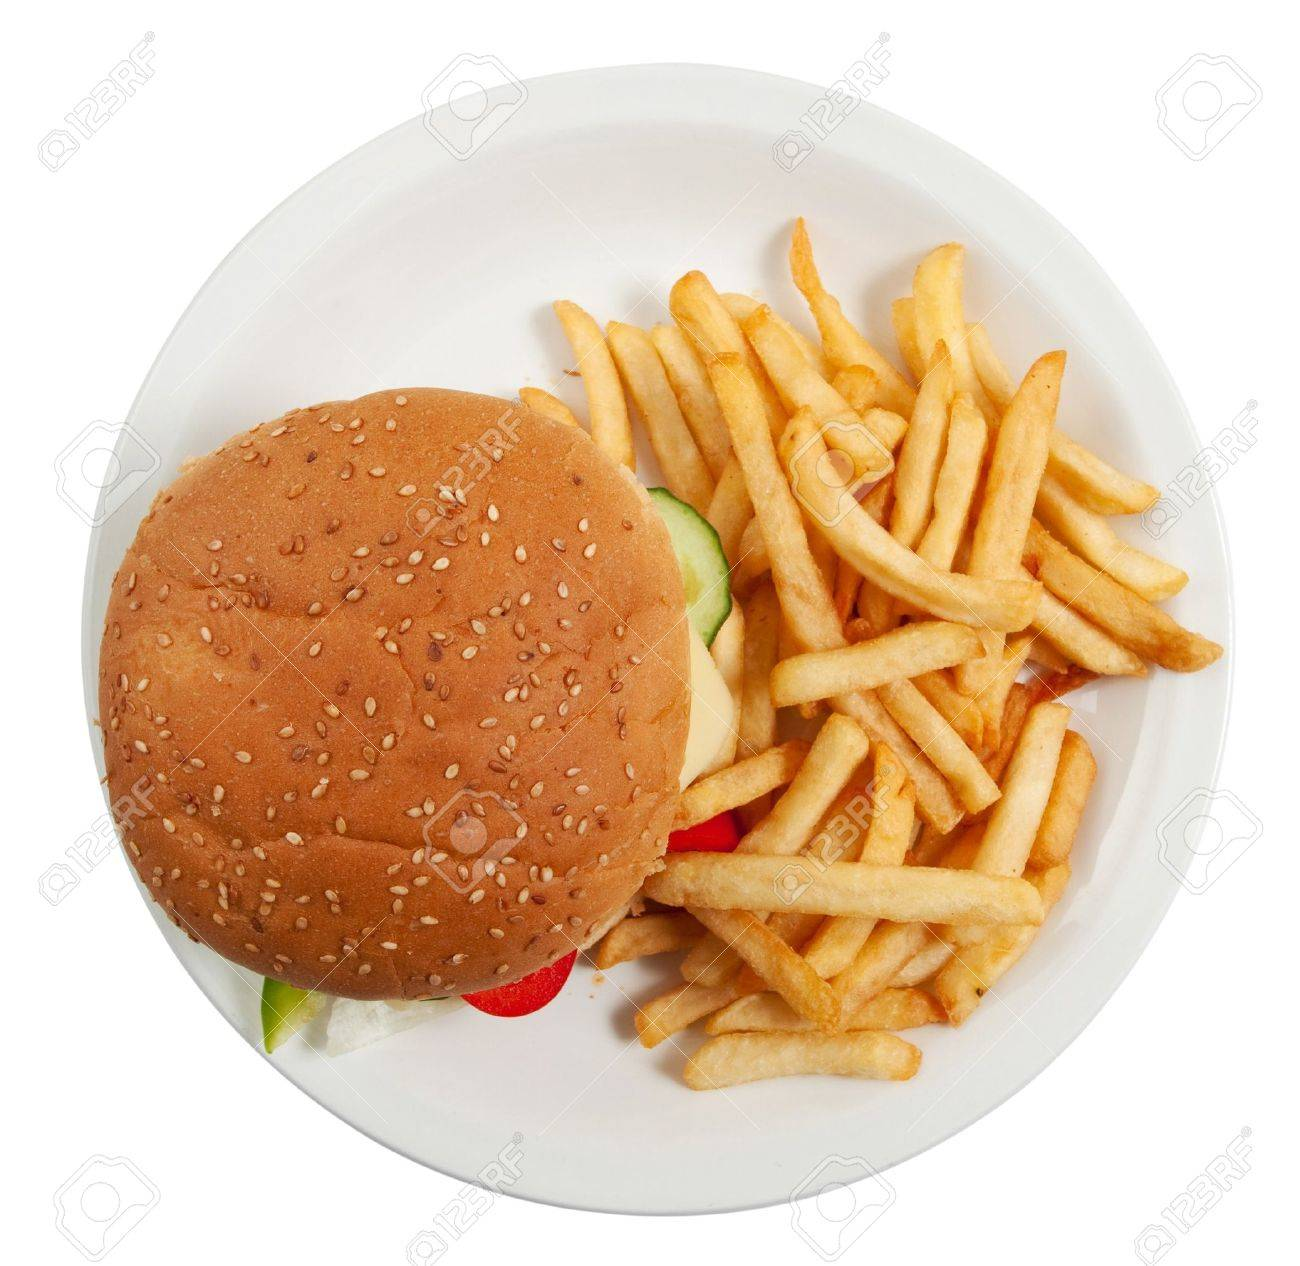 Cheeseburger on dinner plate with french fries isolated on white Stock Photo - 9856605